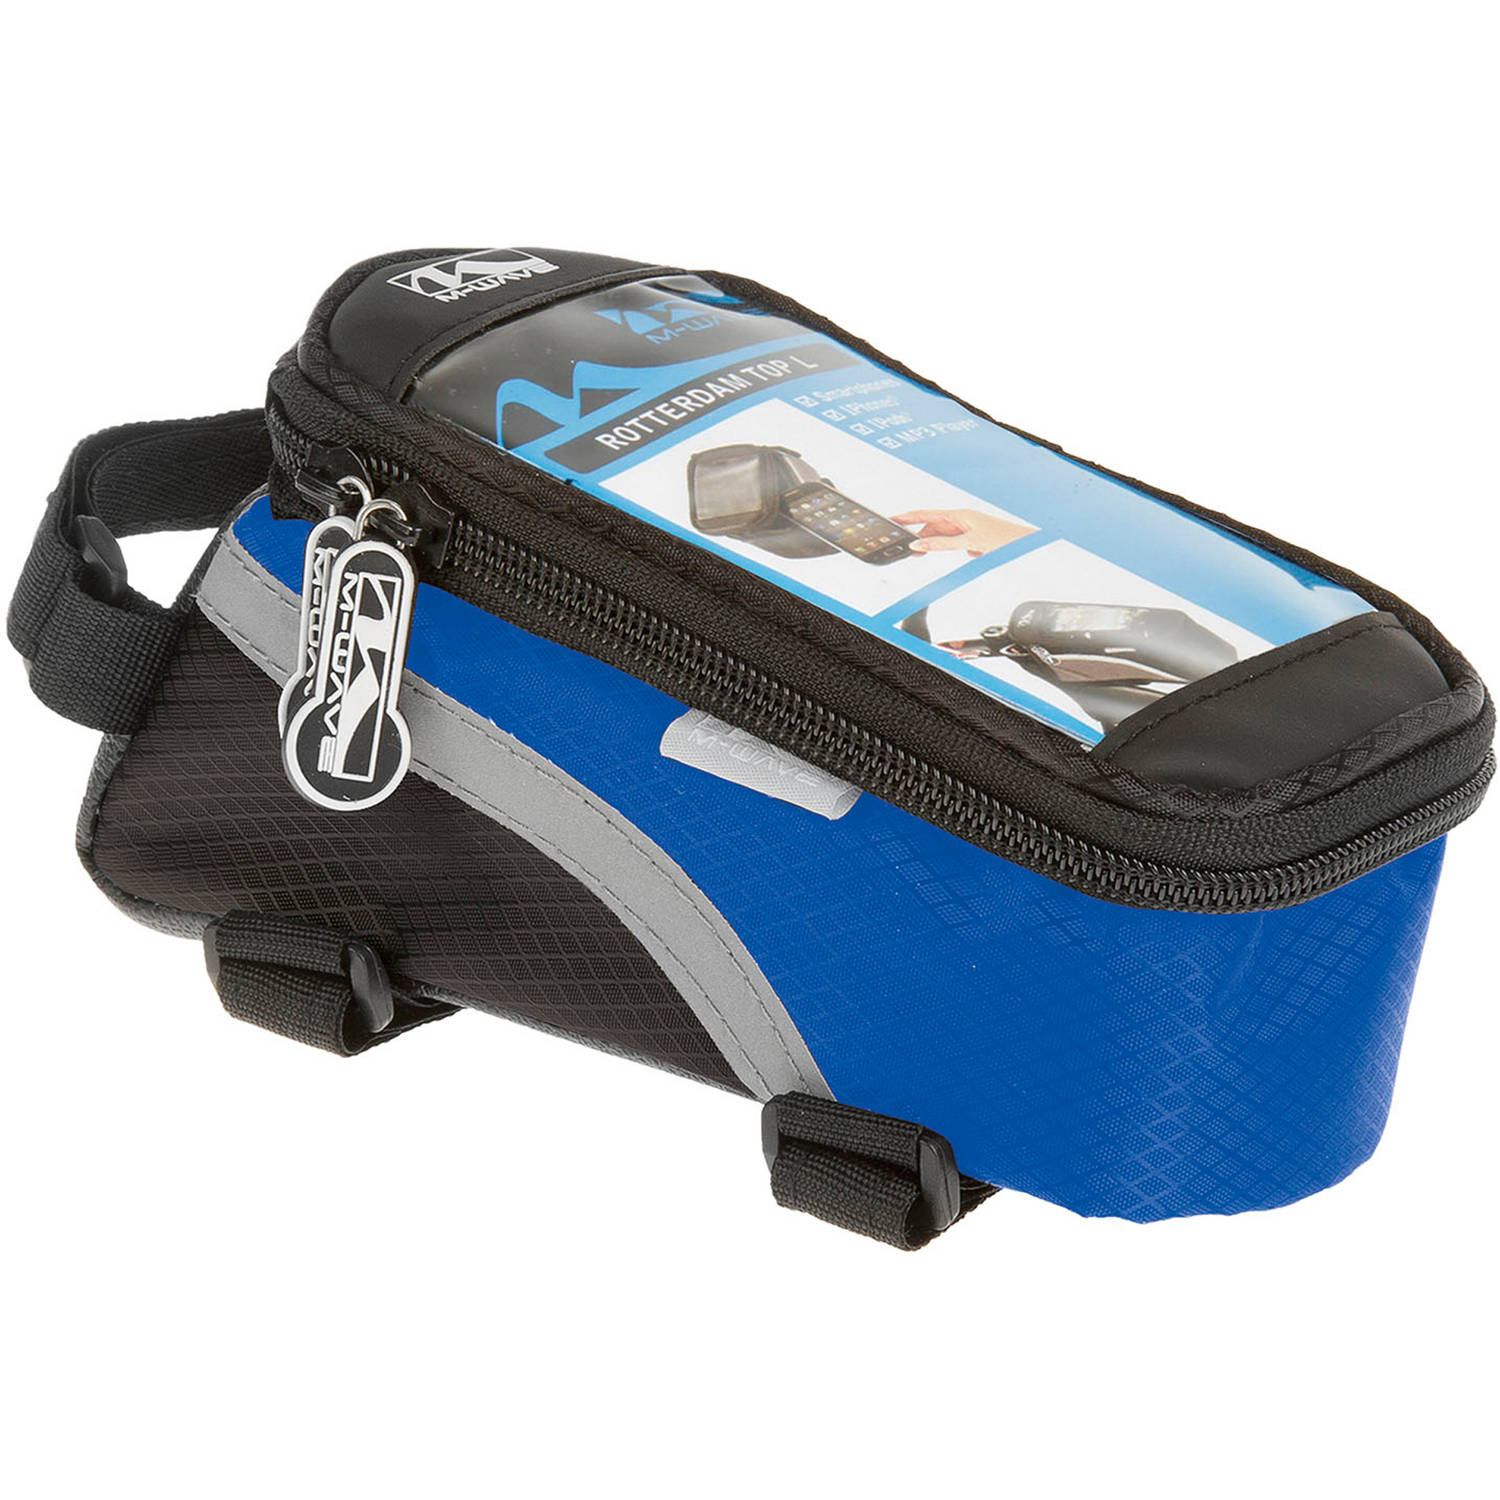 Ventura Rotterdam Smartphone Top Tube Bag, Blue